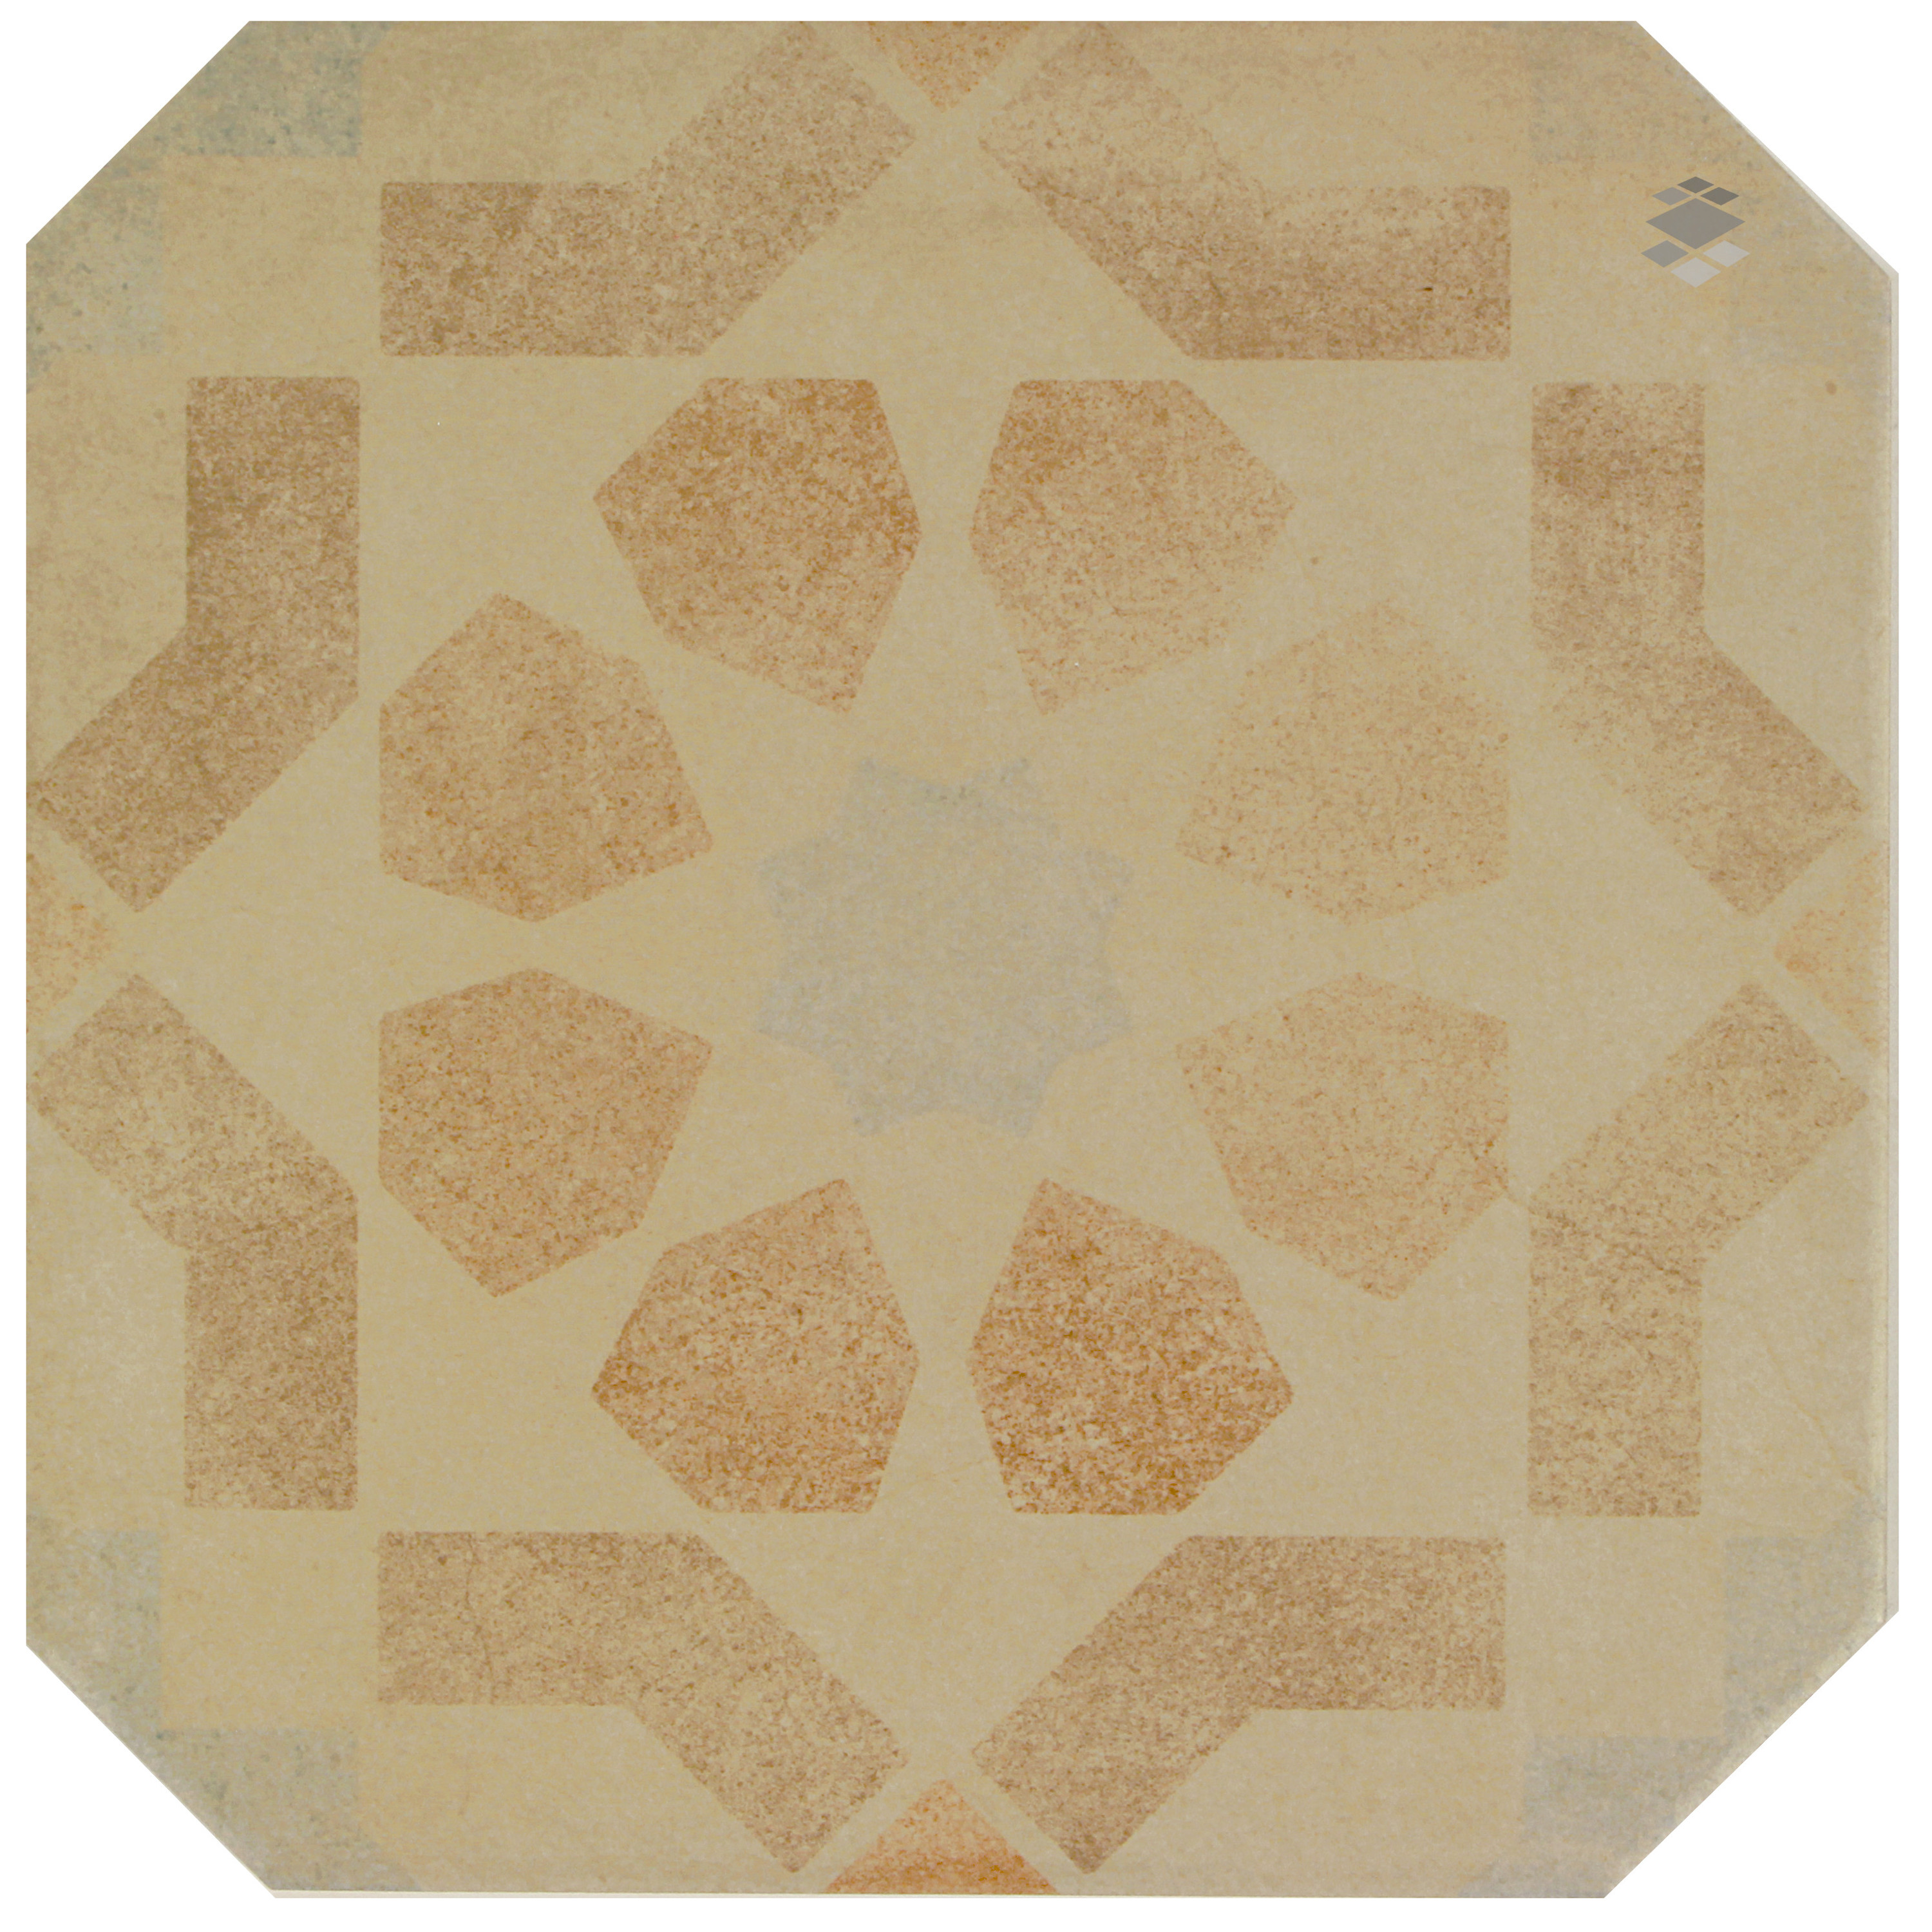 Floor Tile Cotto Octogono Turgis 20x20 Cm Products Classic Country